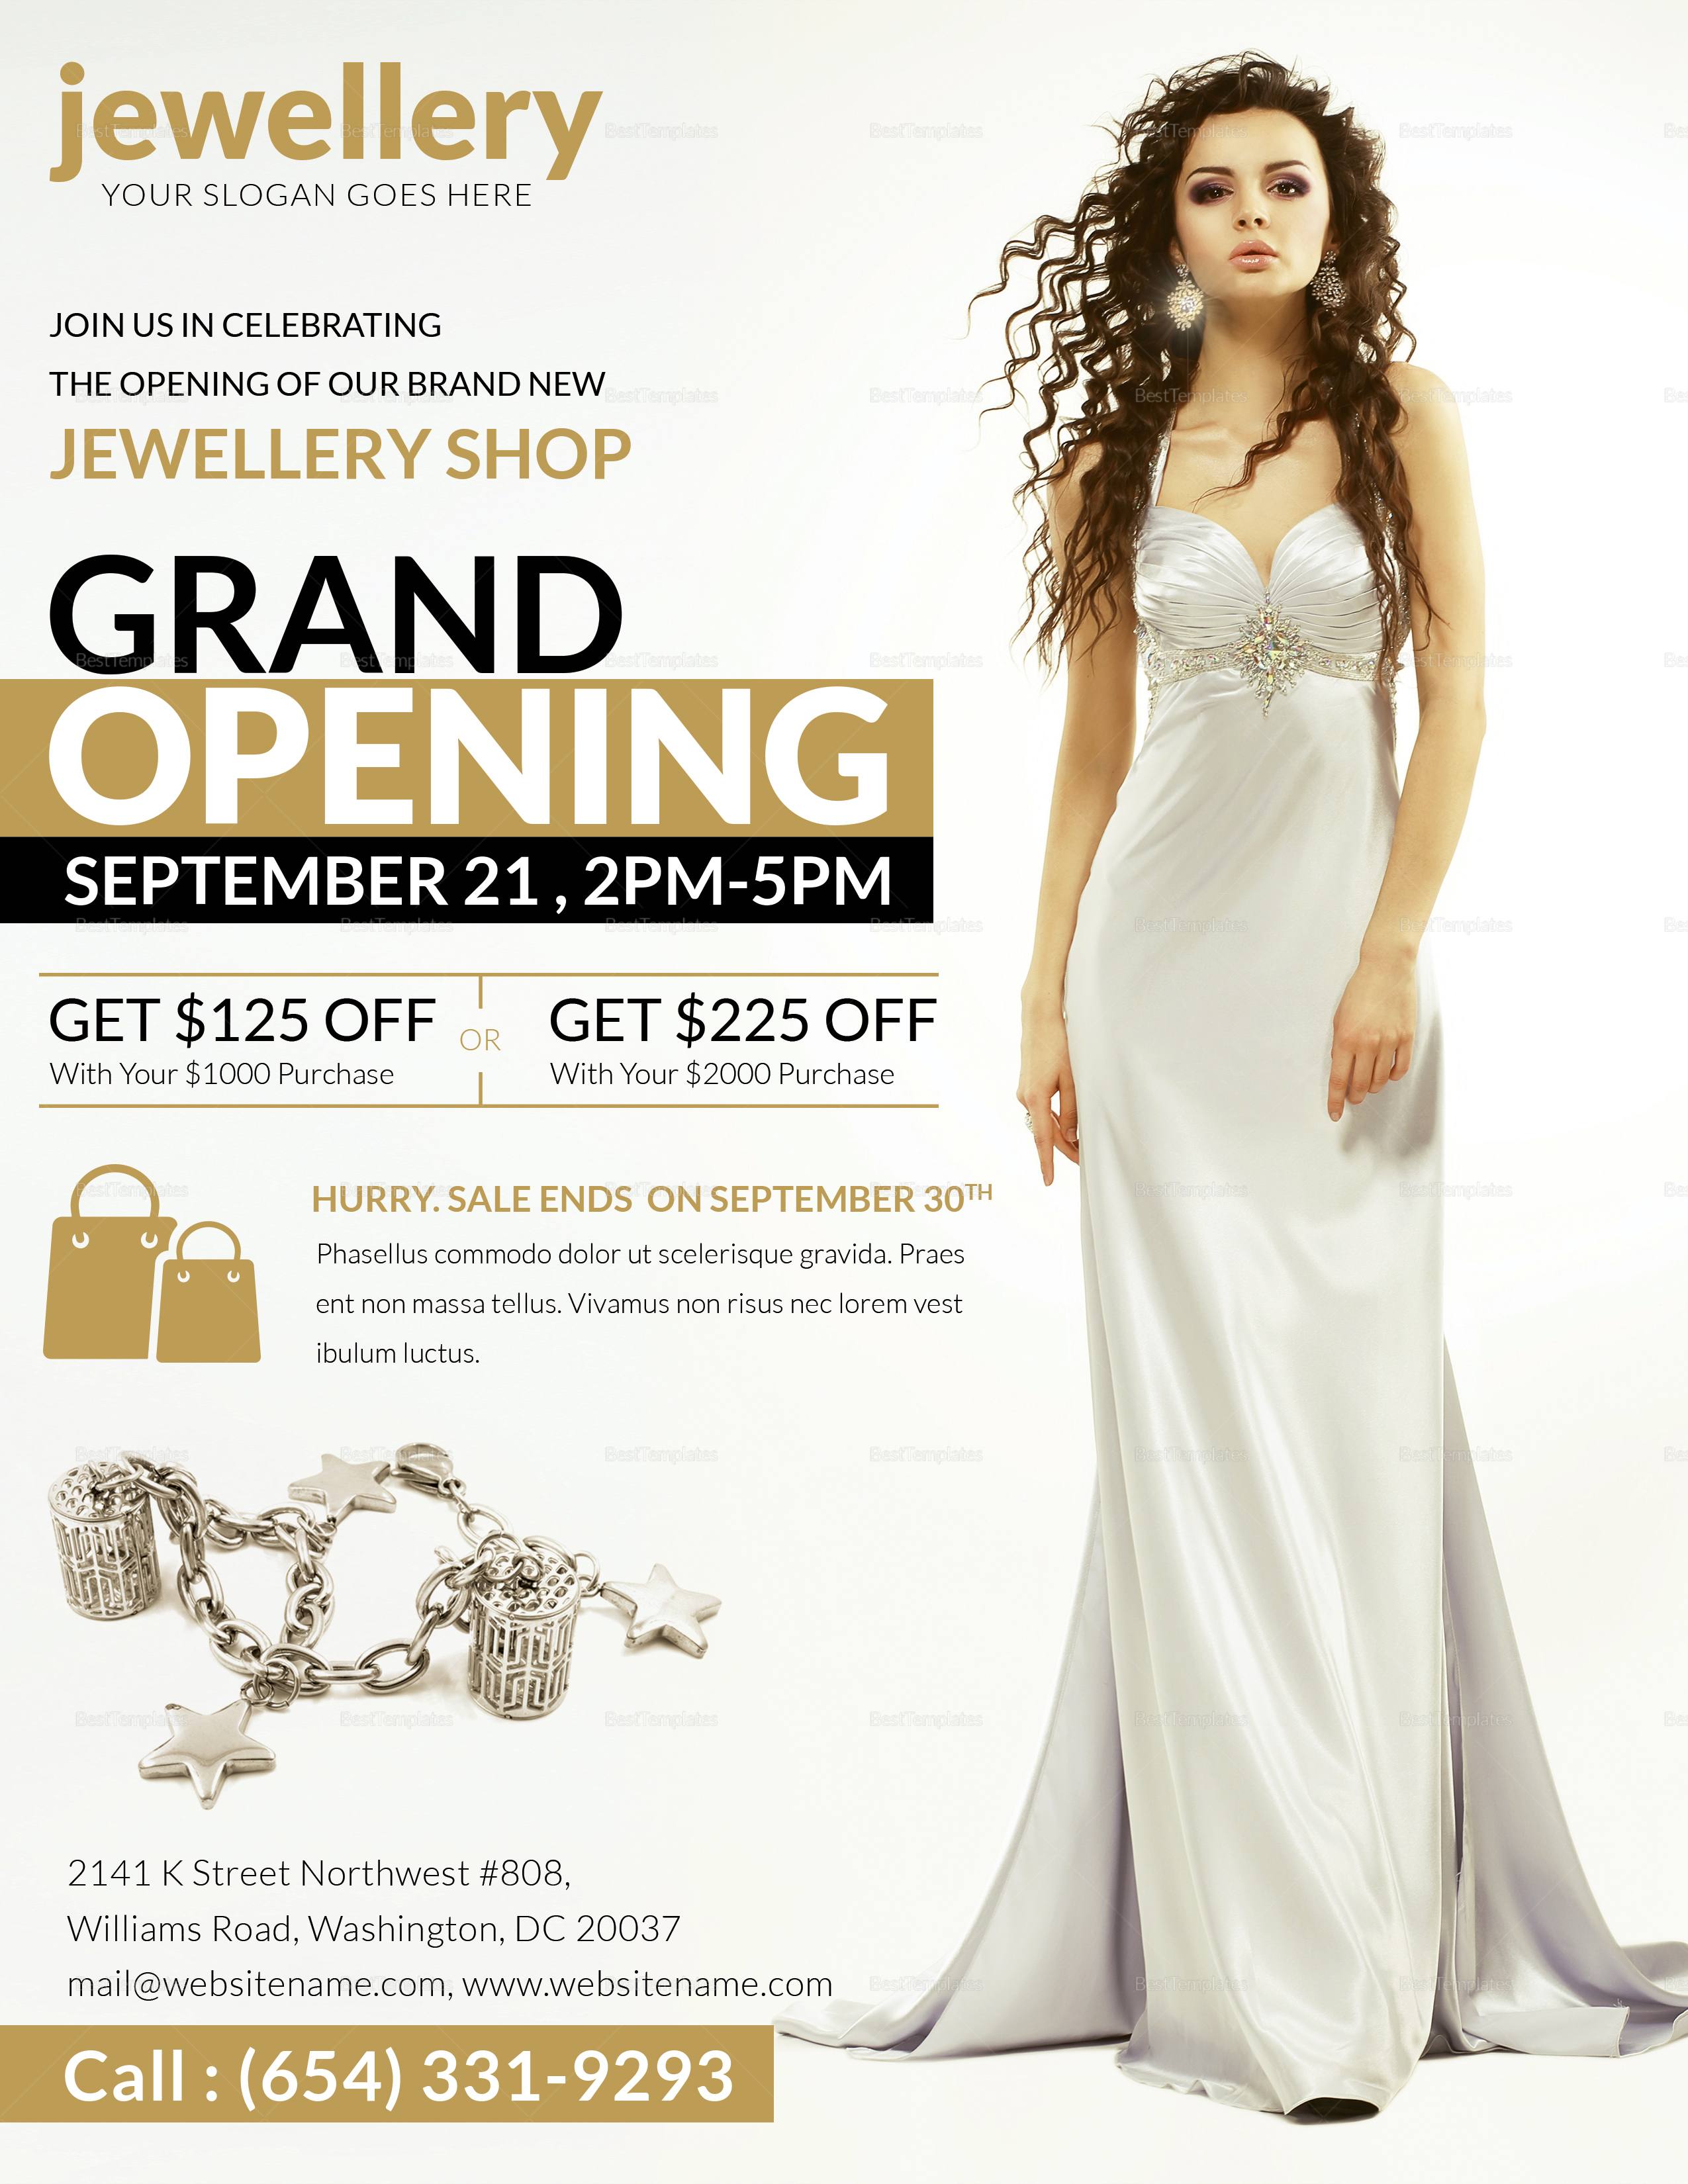 Elegant Jewellery Grand Opening Flyer Design Template In Psd Word Publisher